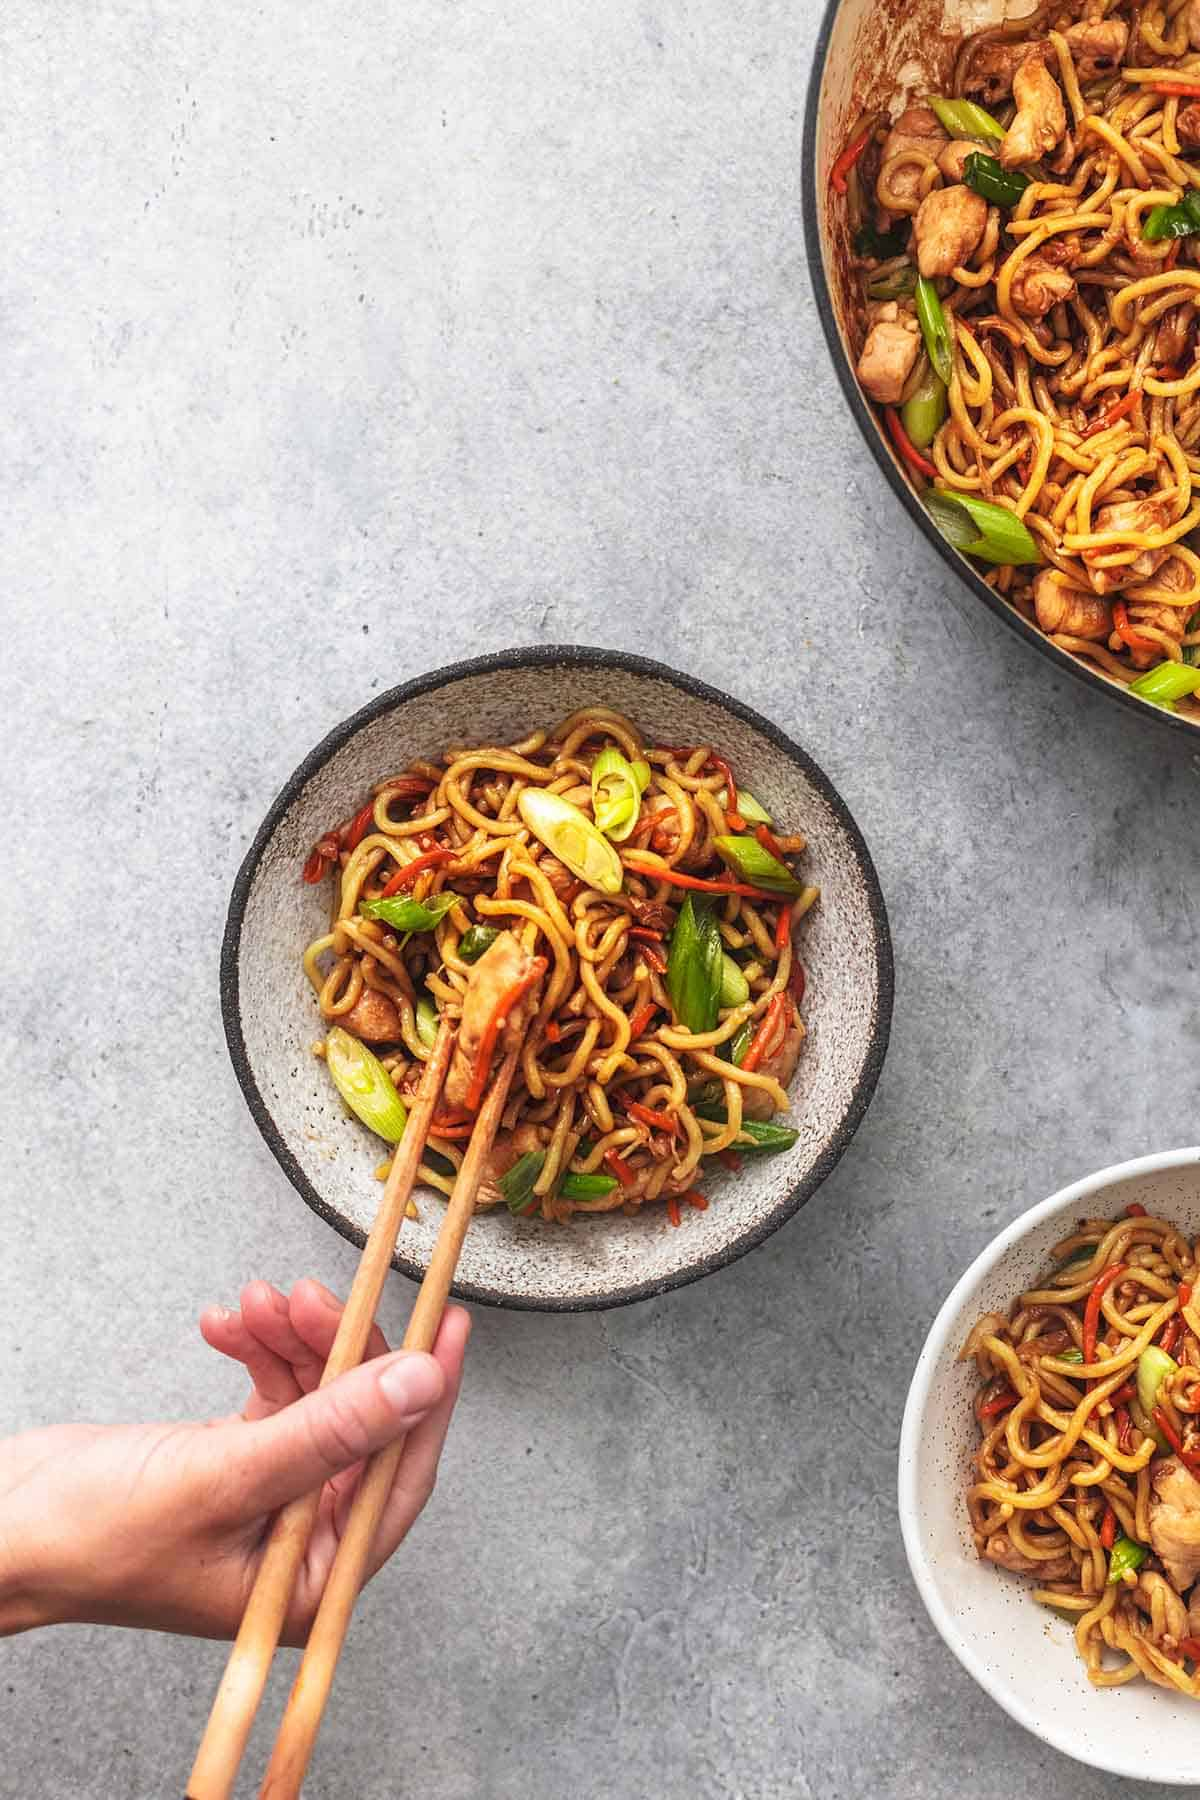 top view of hands grabbing a bite of chicken chow mein from a bowl with chopsticks.